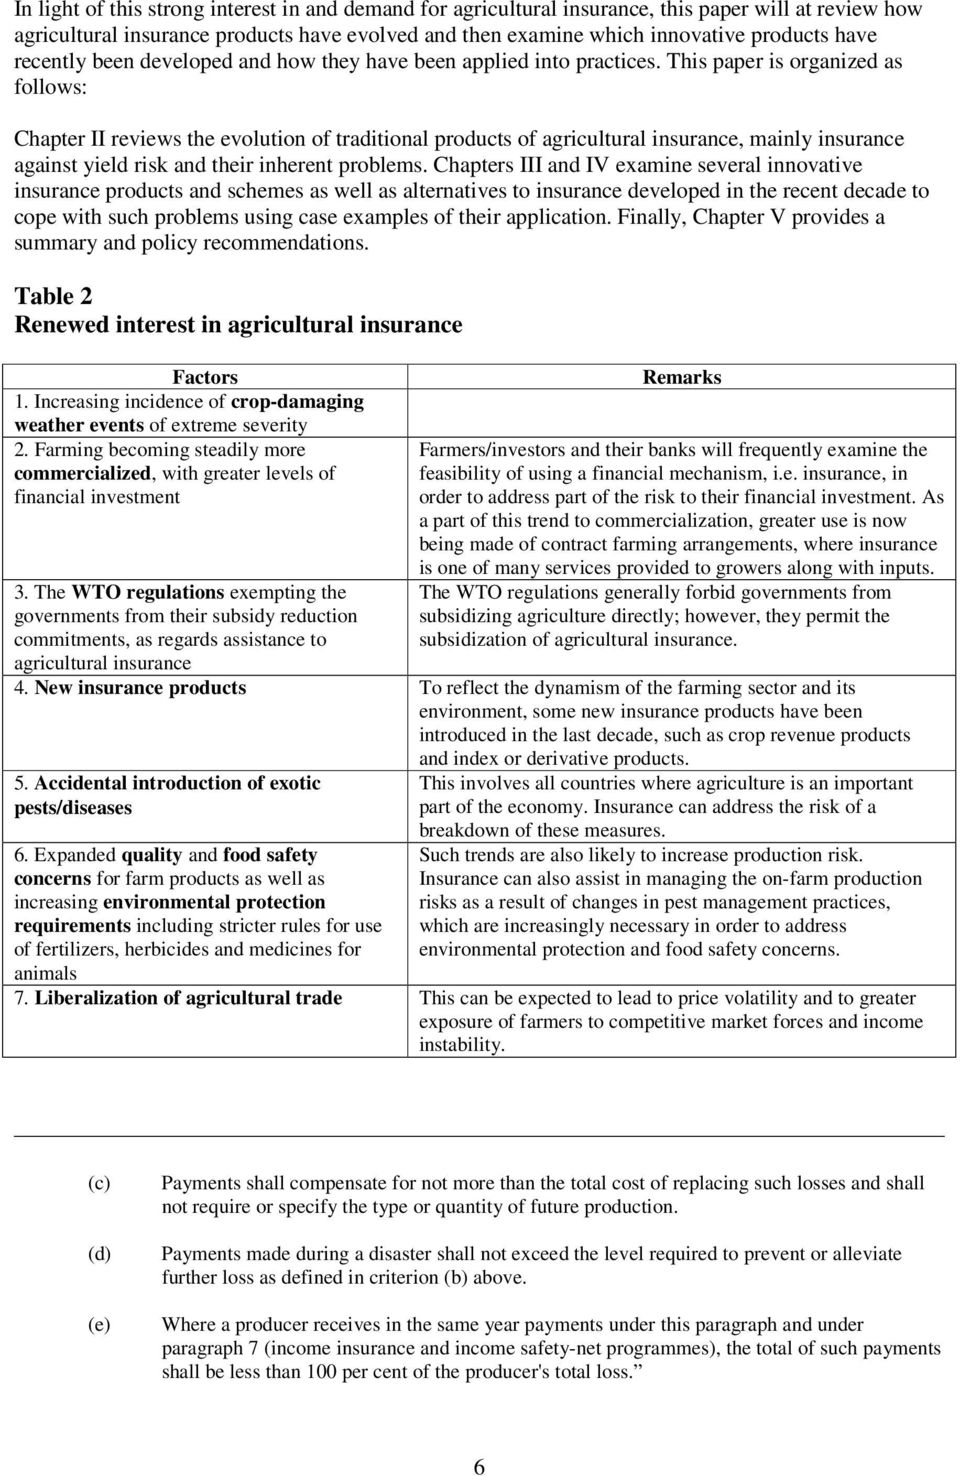 This paper is organized as follows: Chapter II reviews the evolution of traditional products of agricultural insurance, mainly insurance against yield risk and their inherent problems.